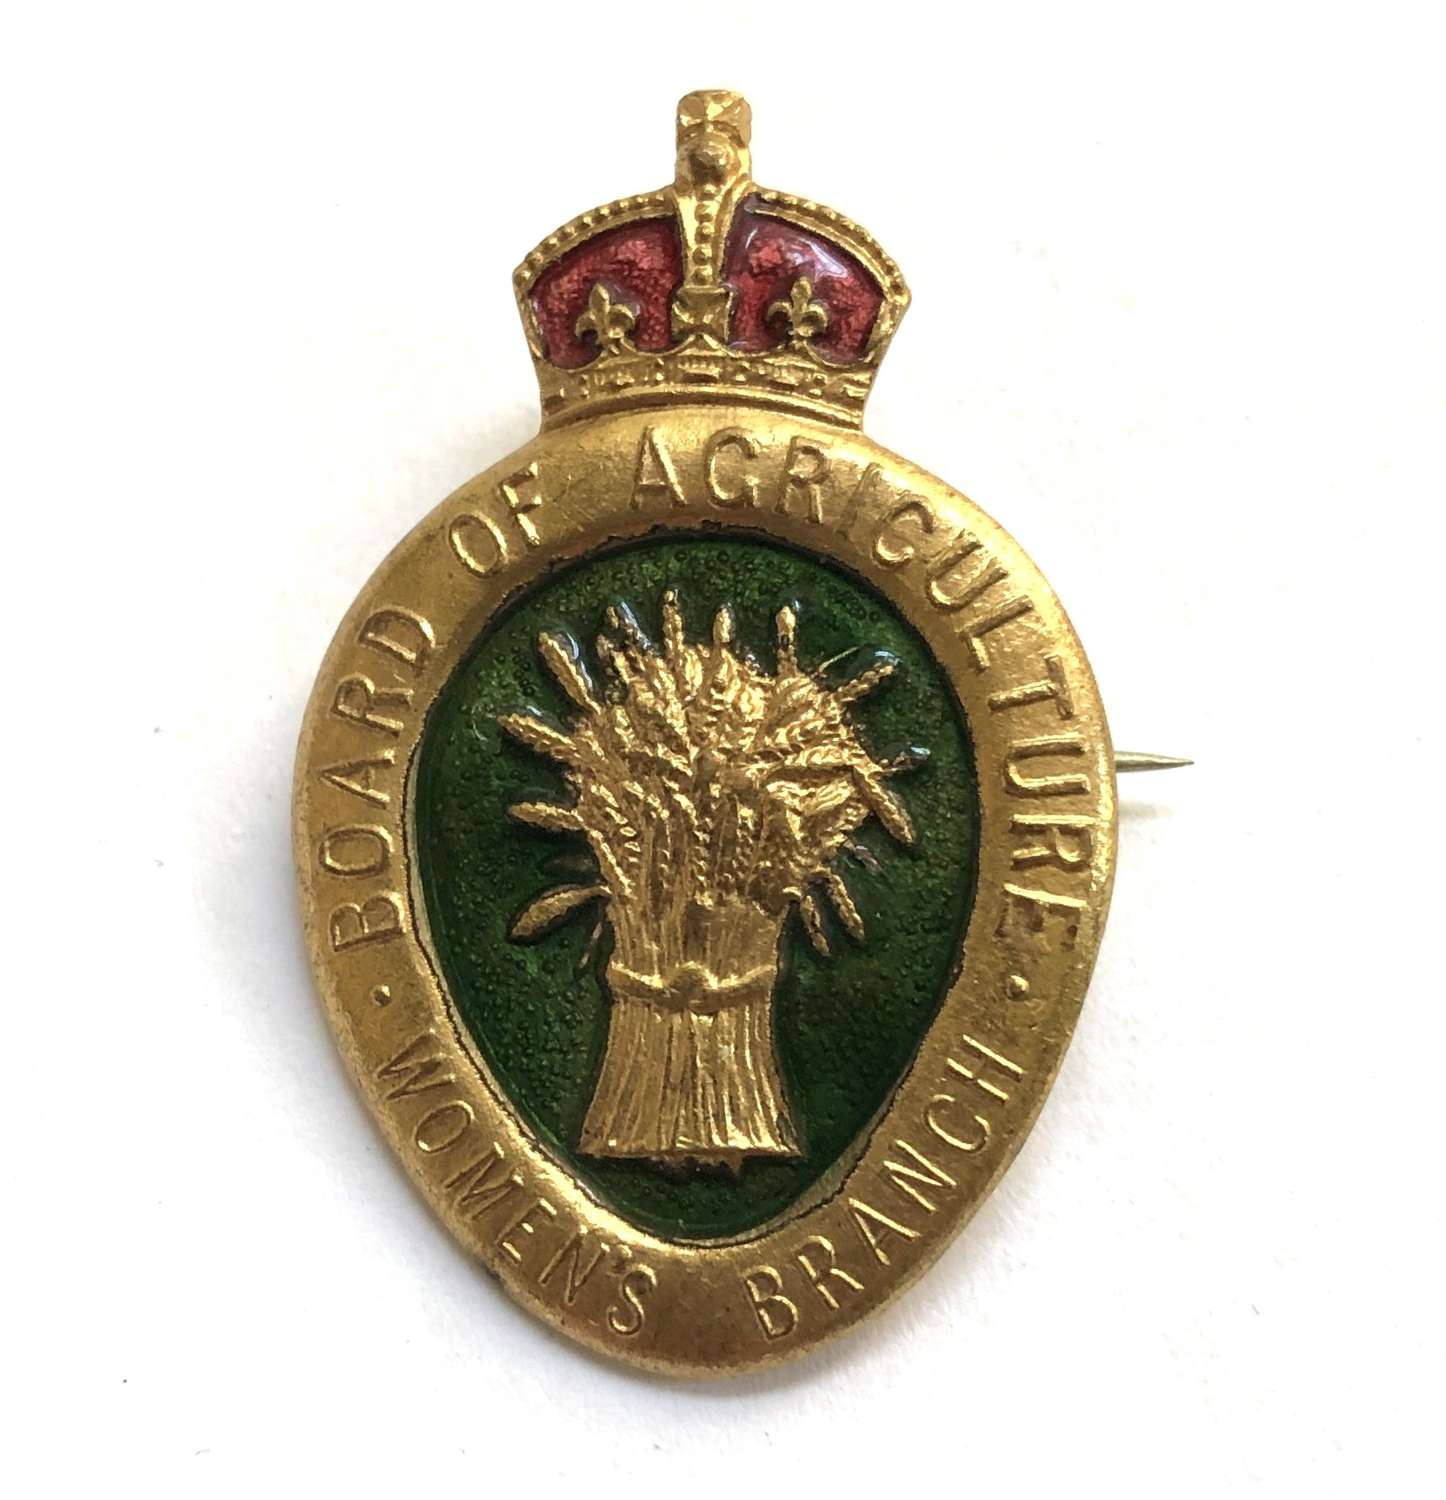 WW1 Board of Agriculture Womens Branch land army badge